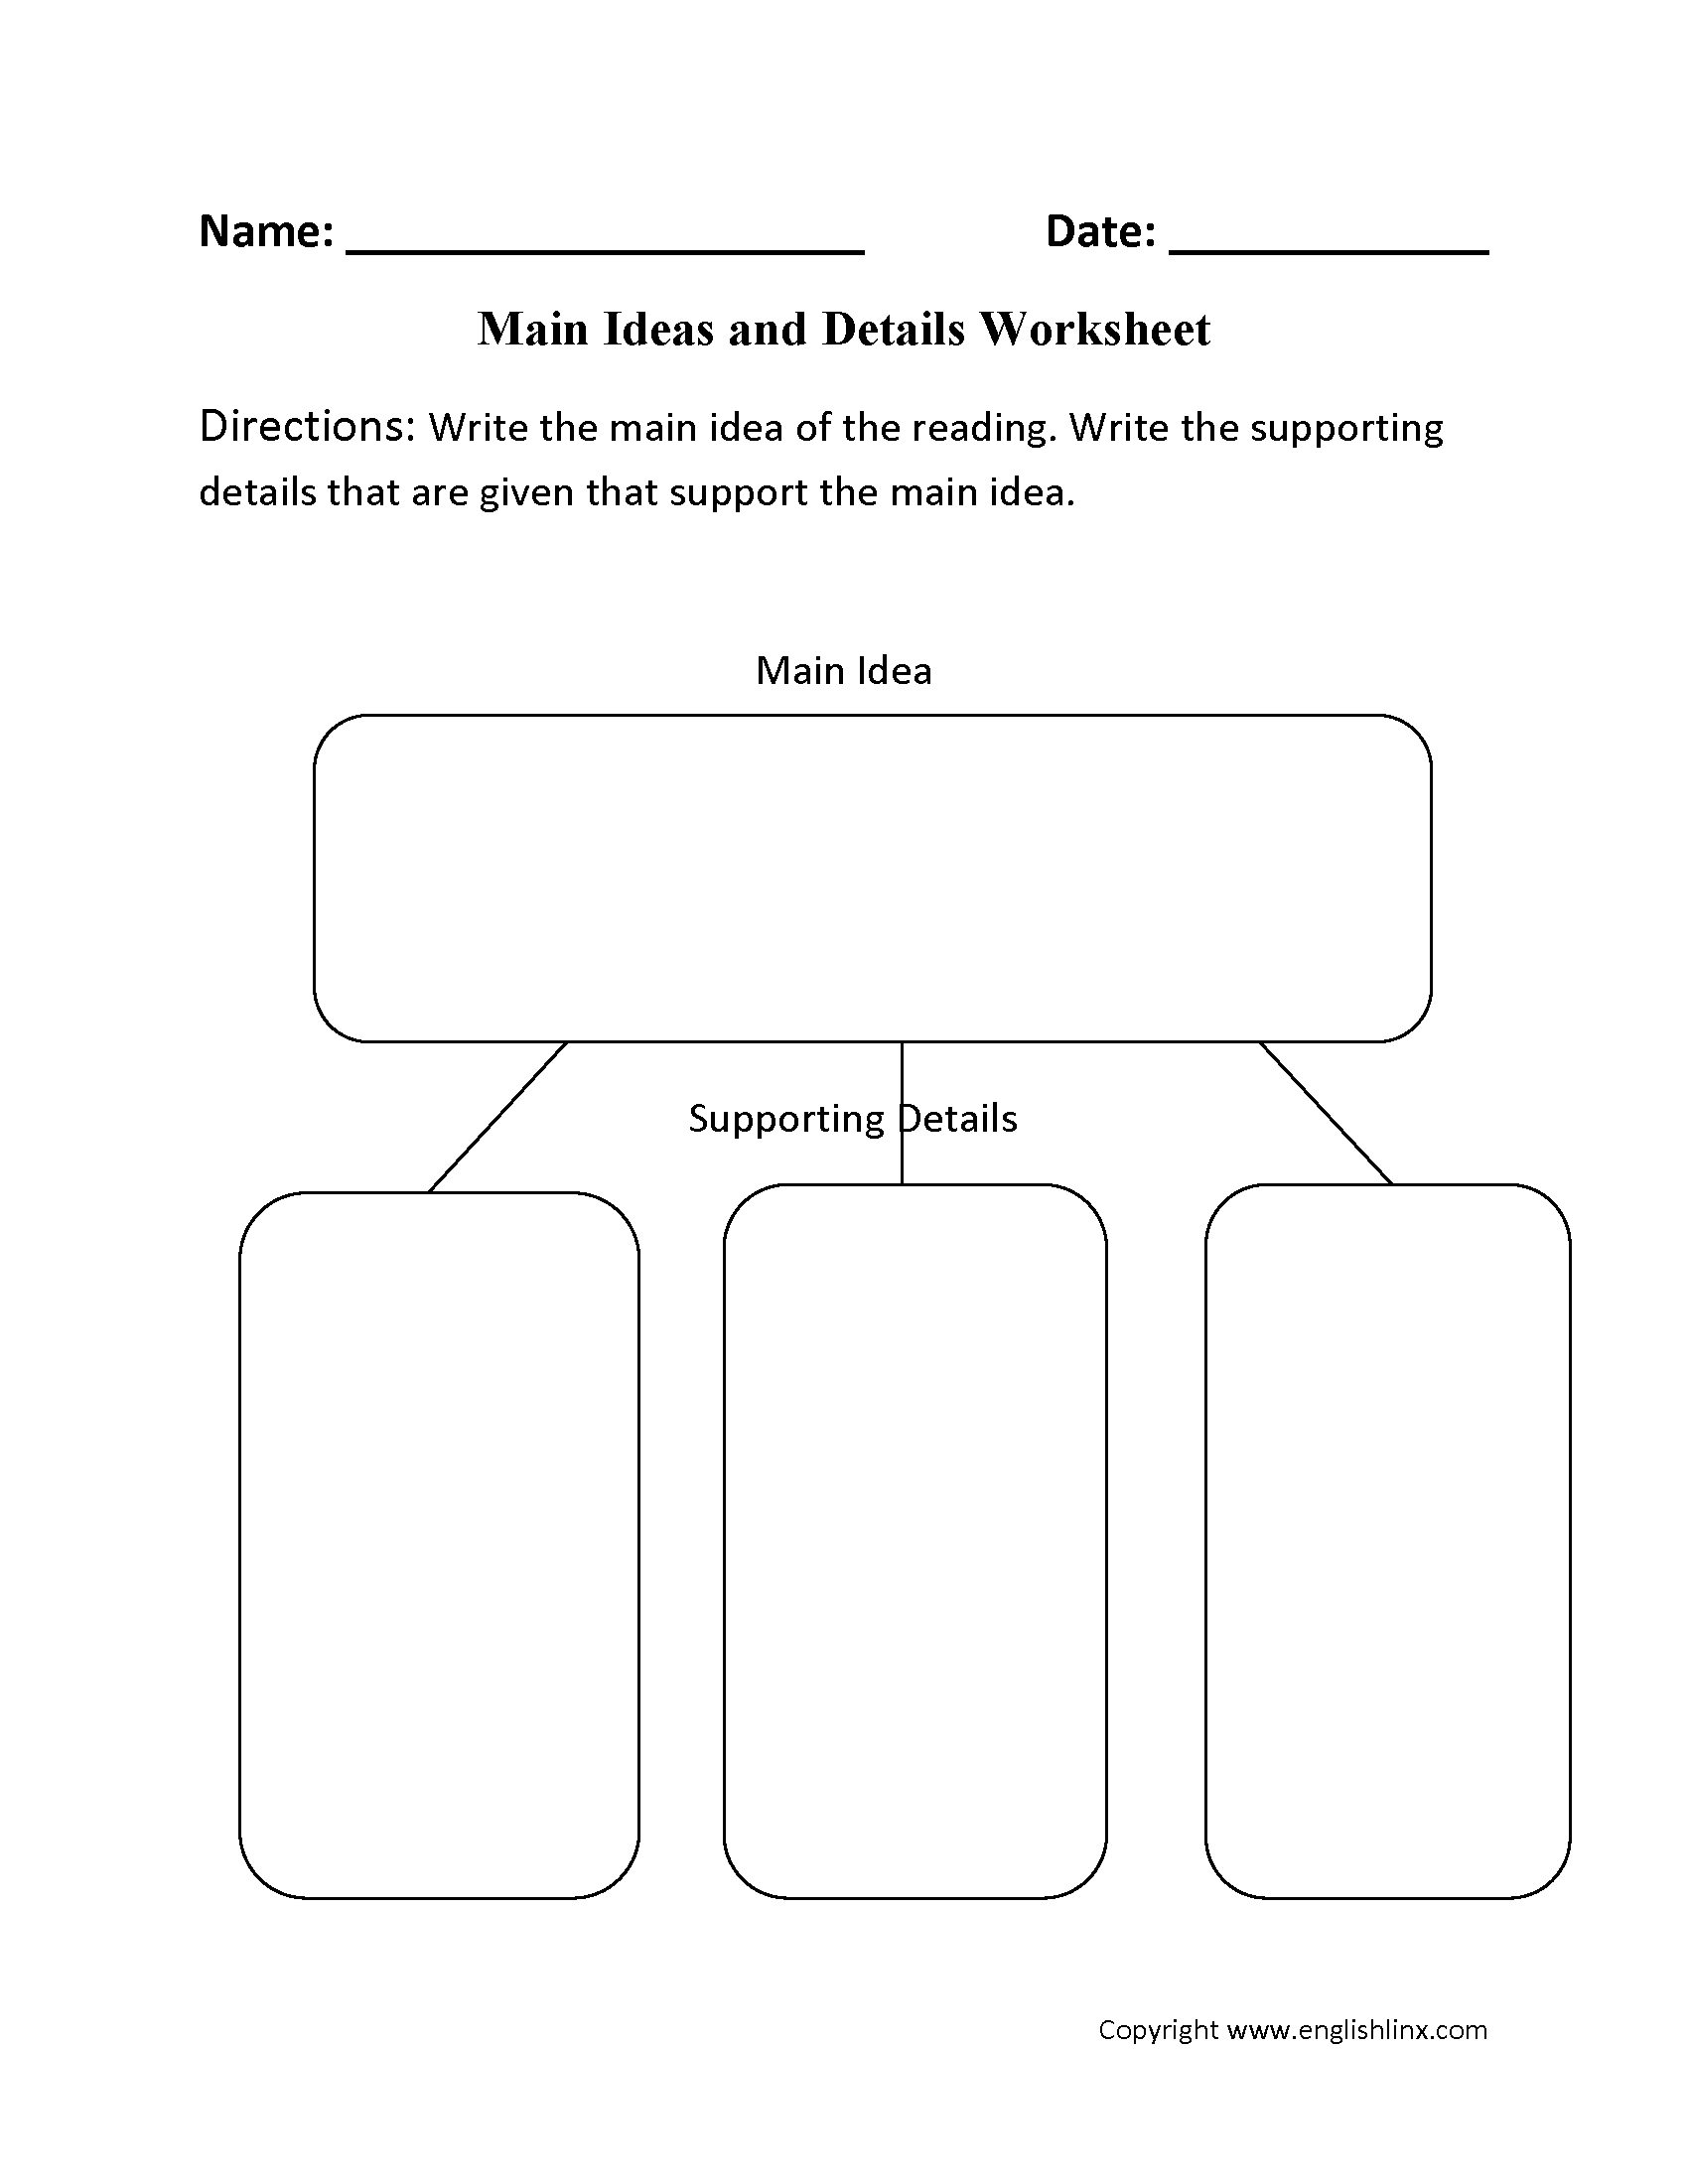 10 Unique Main Idea And Supporting Details Worksheets 4th